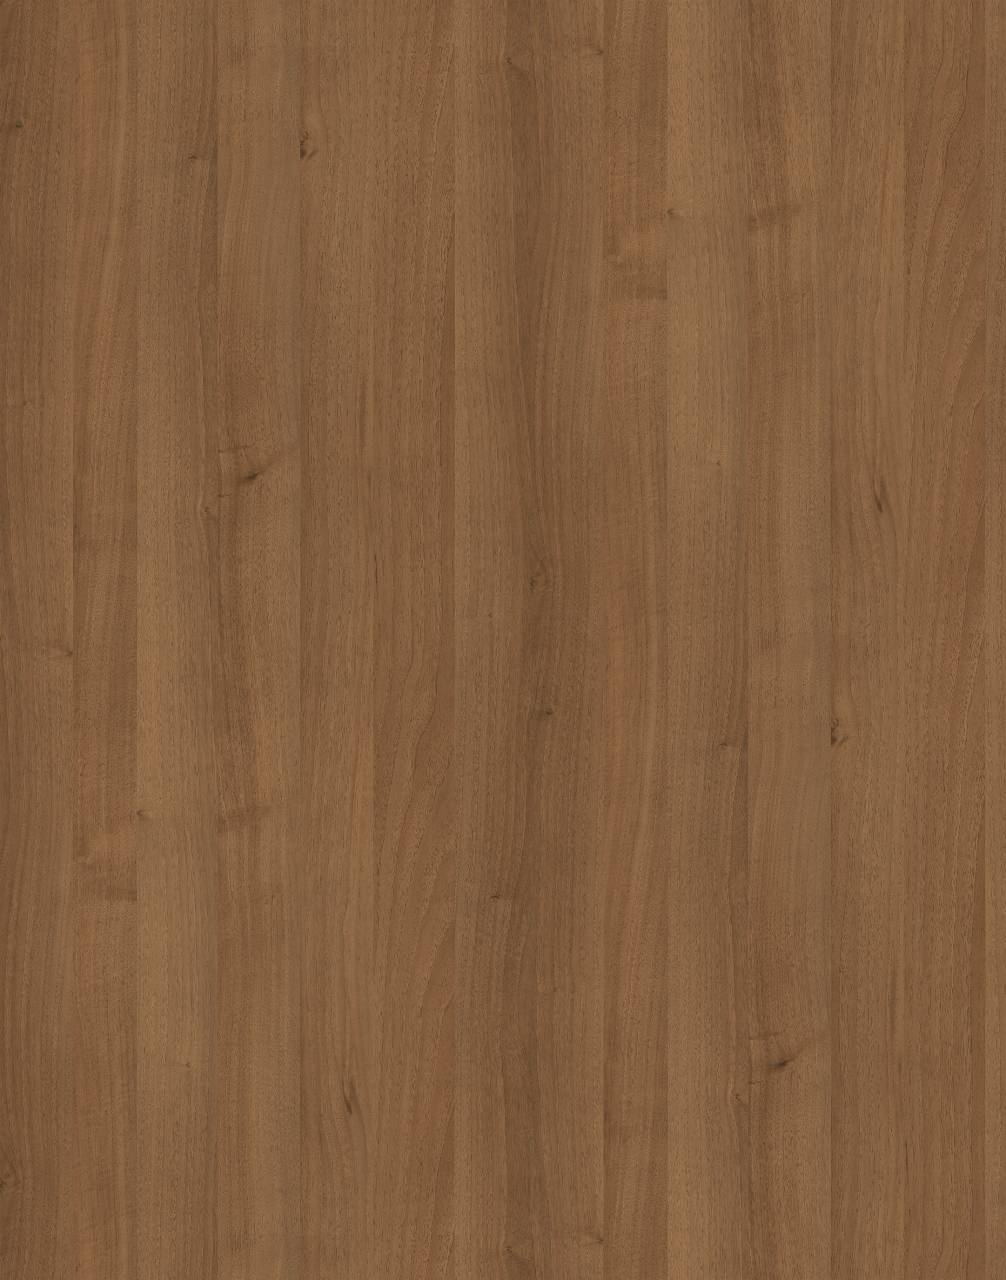 9455 Guarnieri Walnut (MF PB sample)